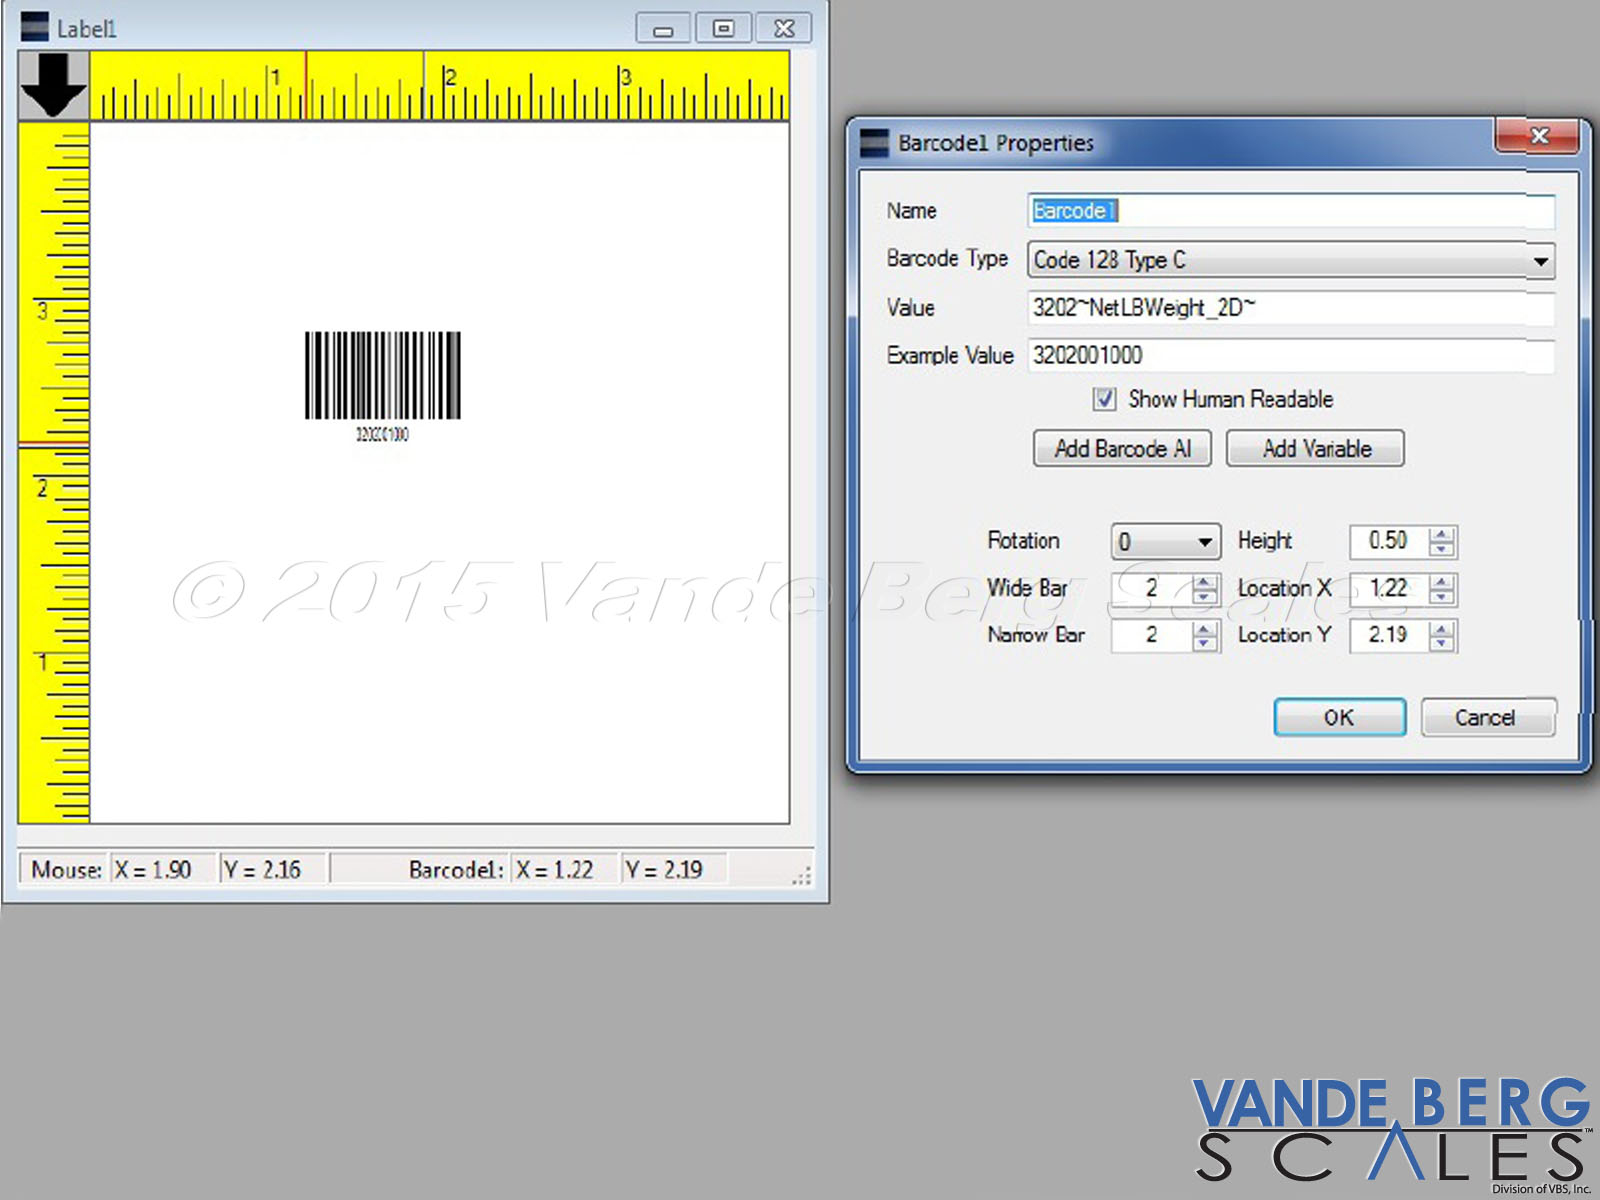 Easily insert several types of barcodes into the label. The barcode can be placed in either ladder or picket fence orientation.